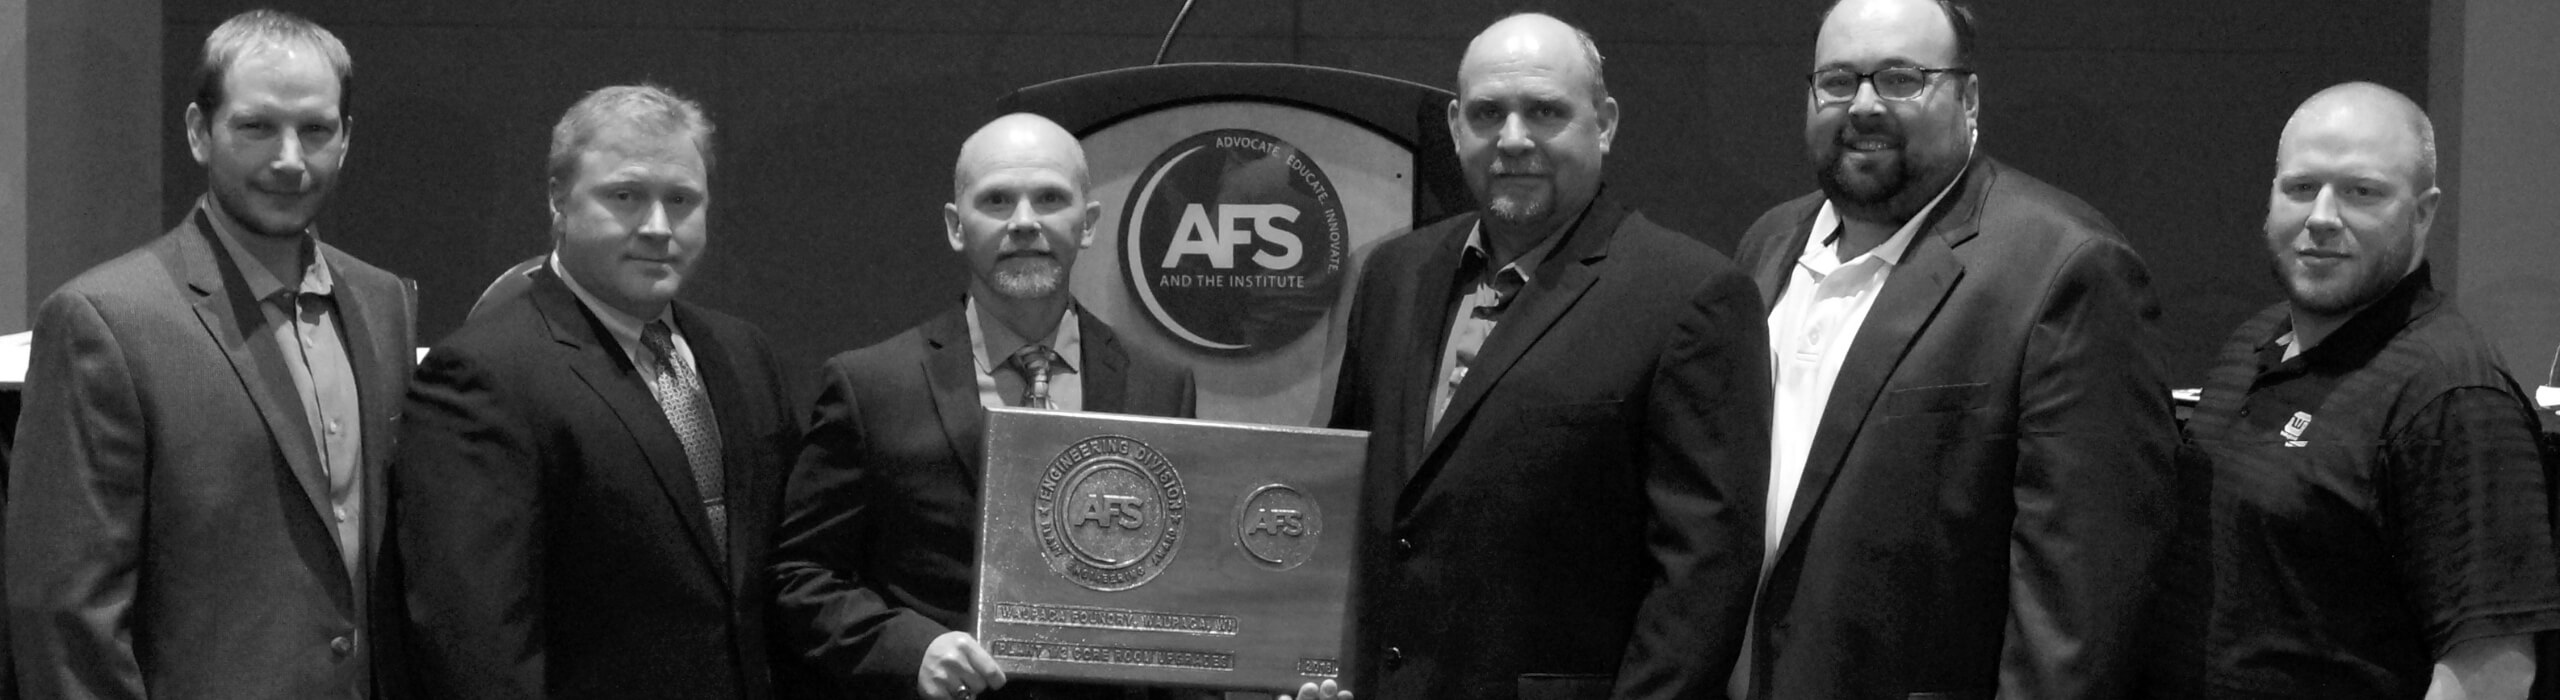 Waupaca Foundry team Earns Industry Awards for Metalcasting Excellence